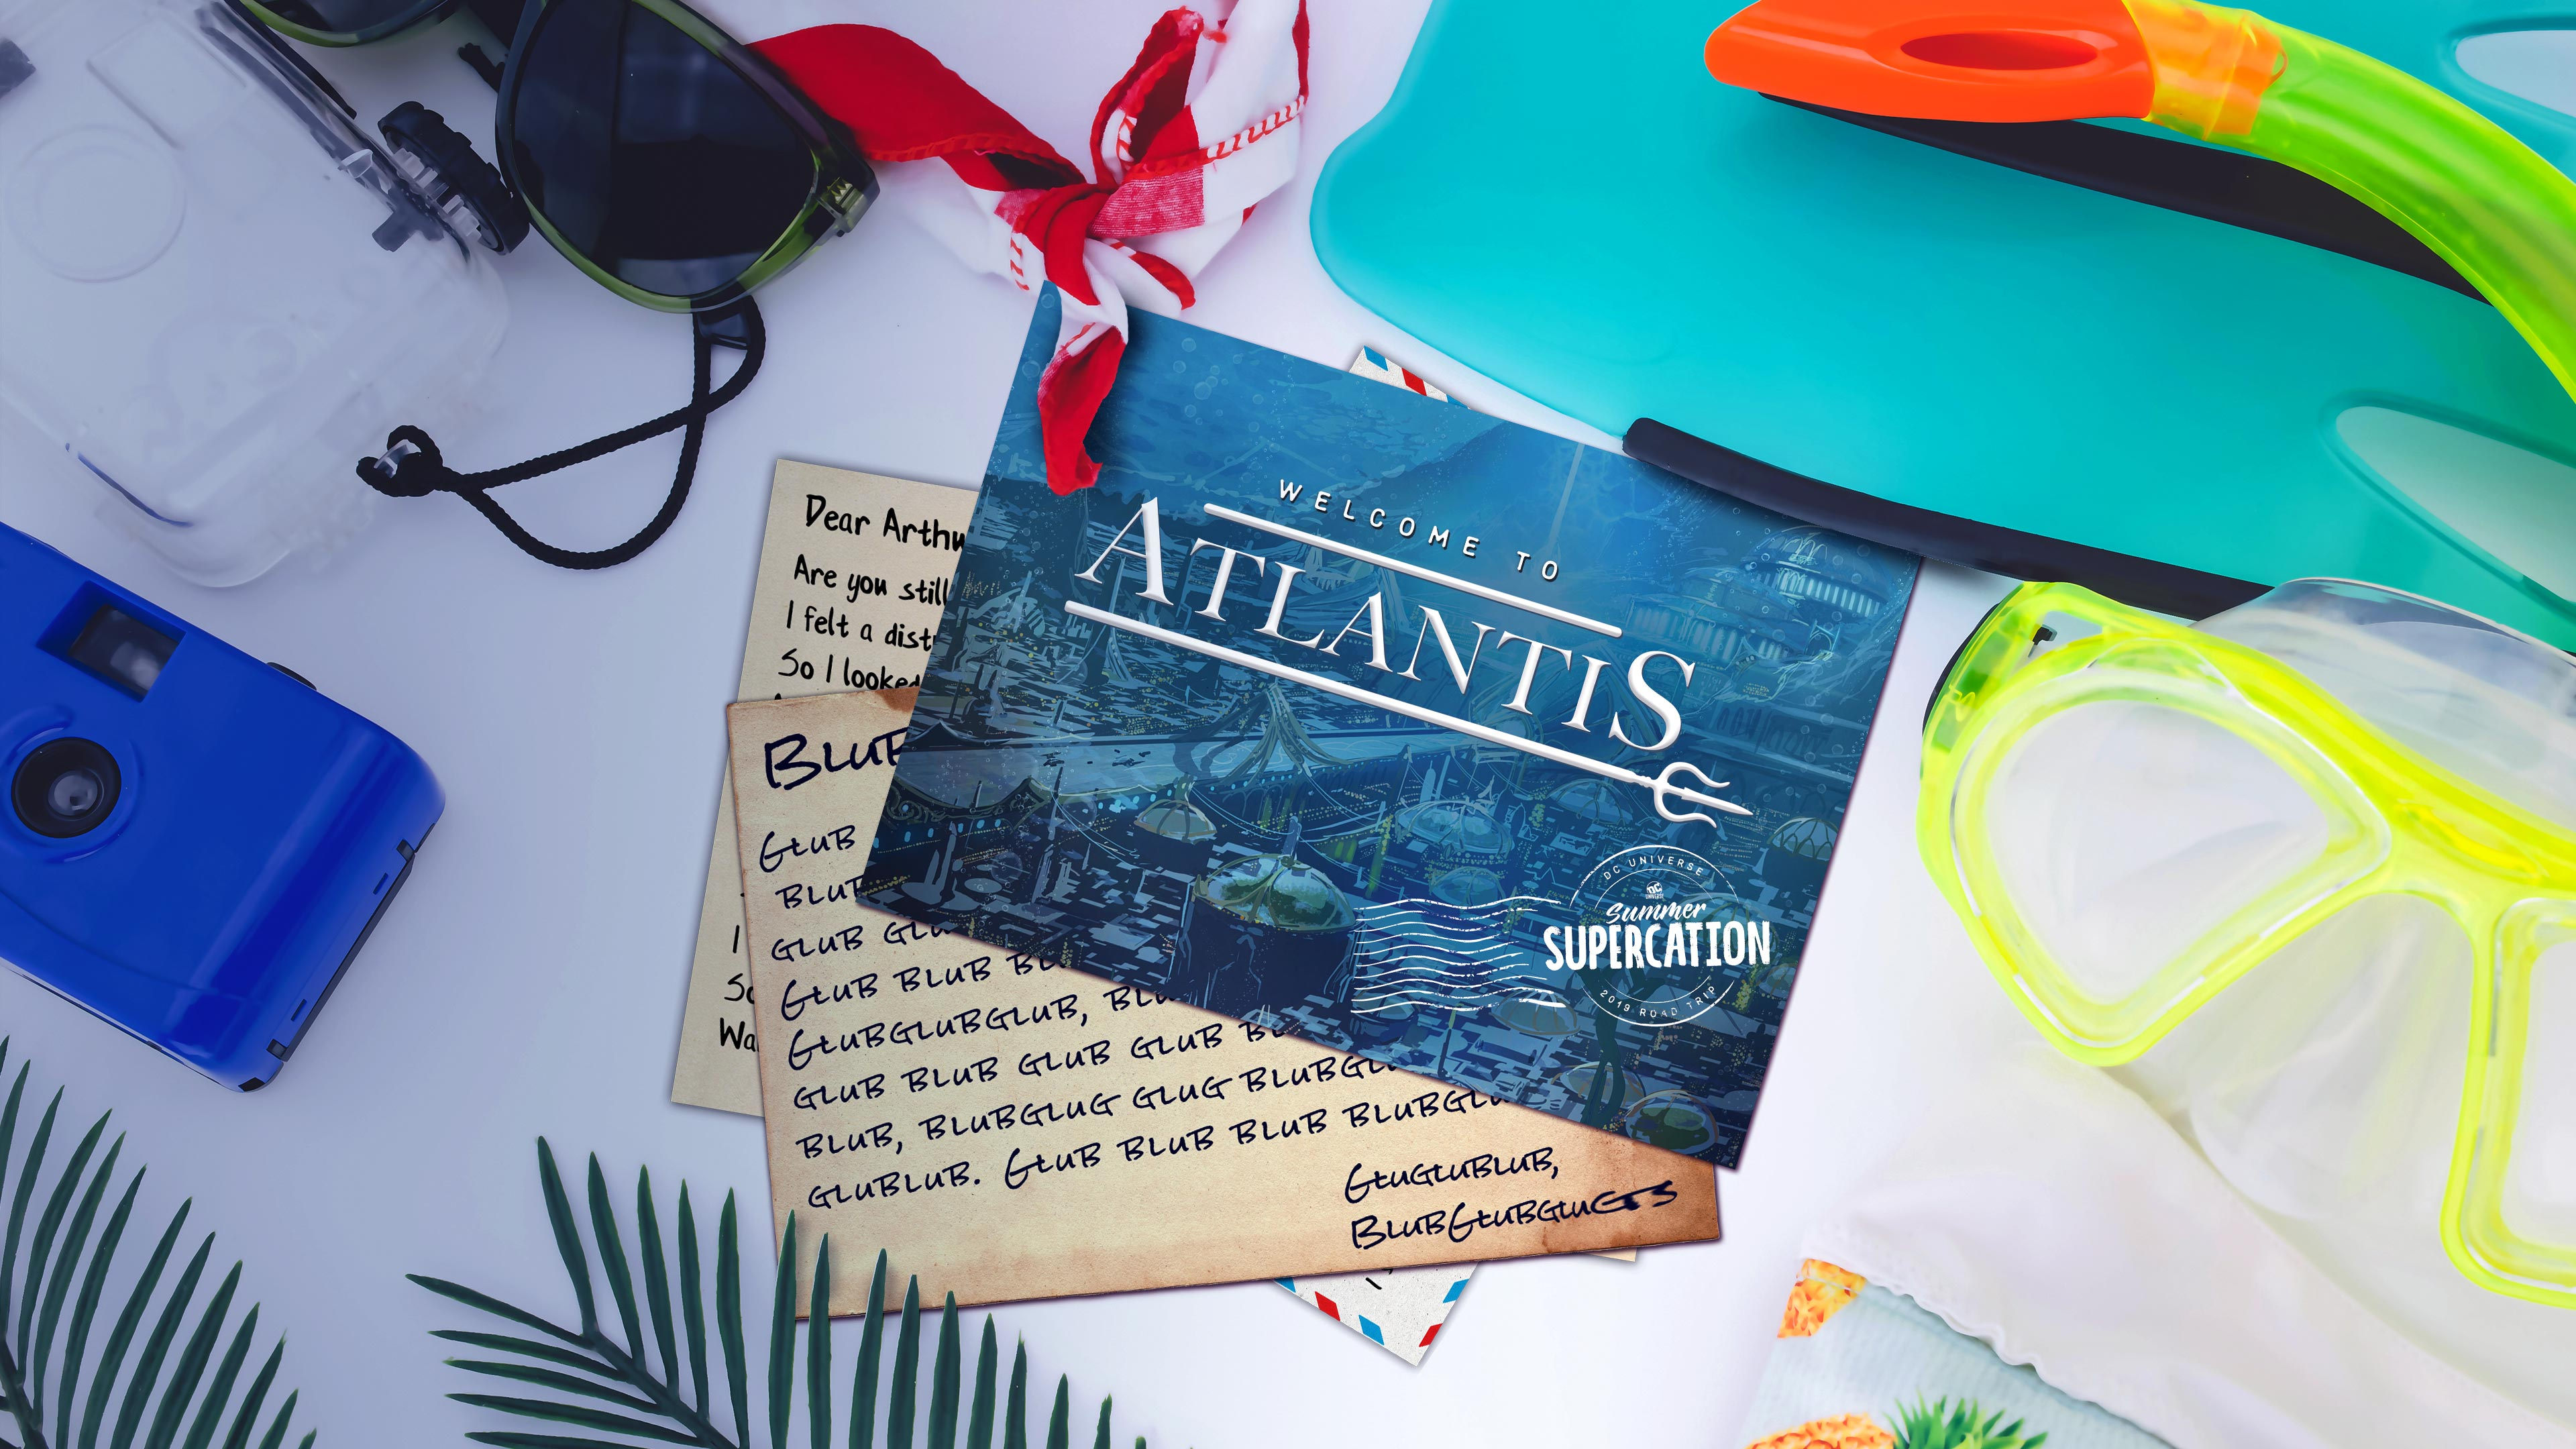 atlantis_postcards_news_mh_hero_190709_v1.jpg